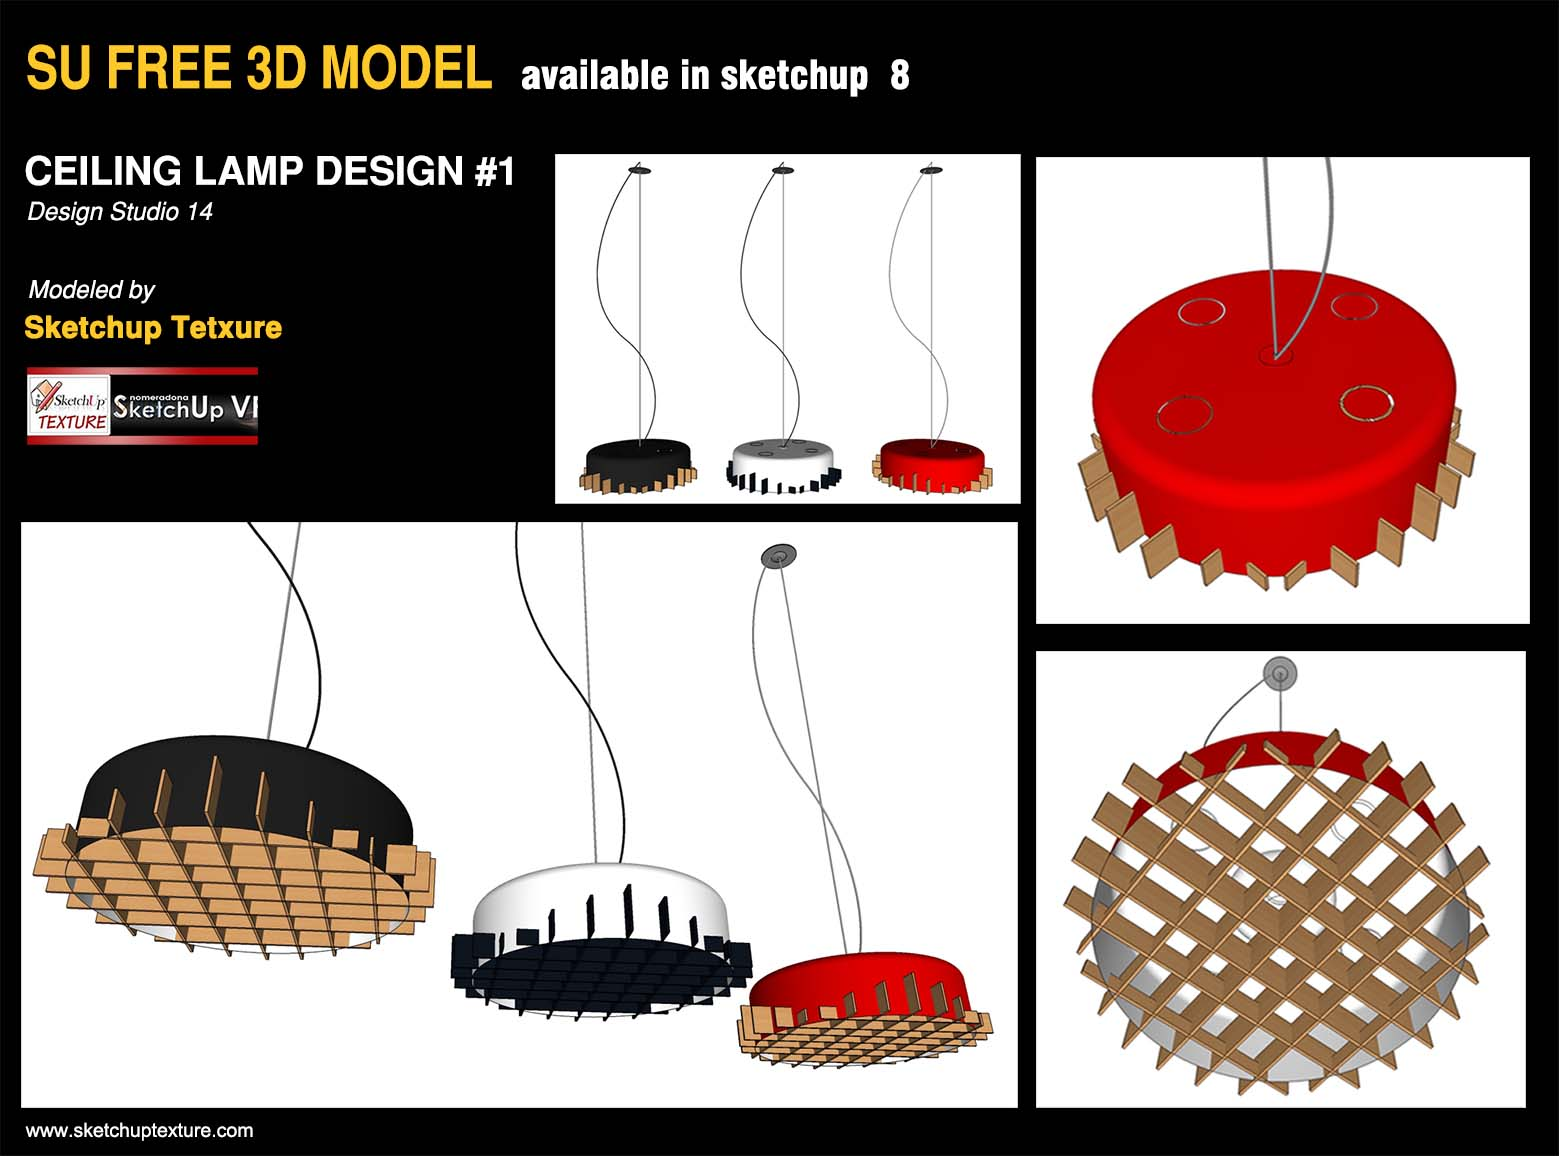 free sketchup 3d model ceiling modern design lamp #1